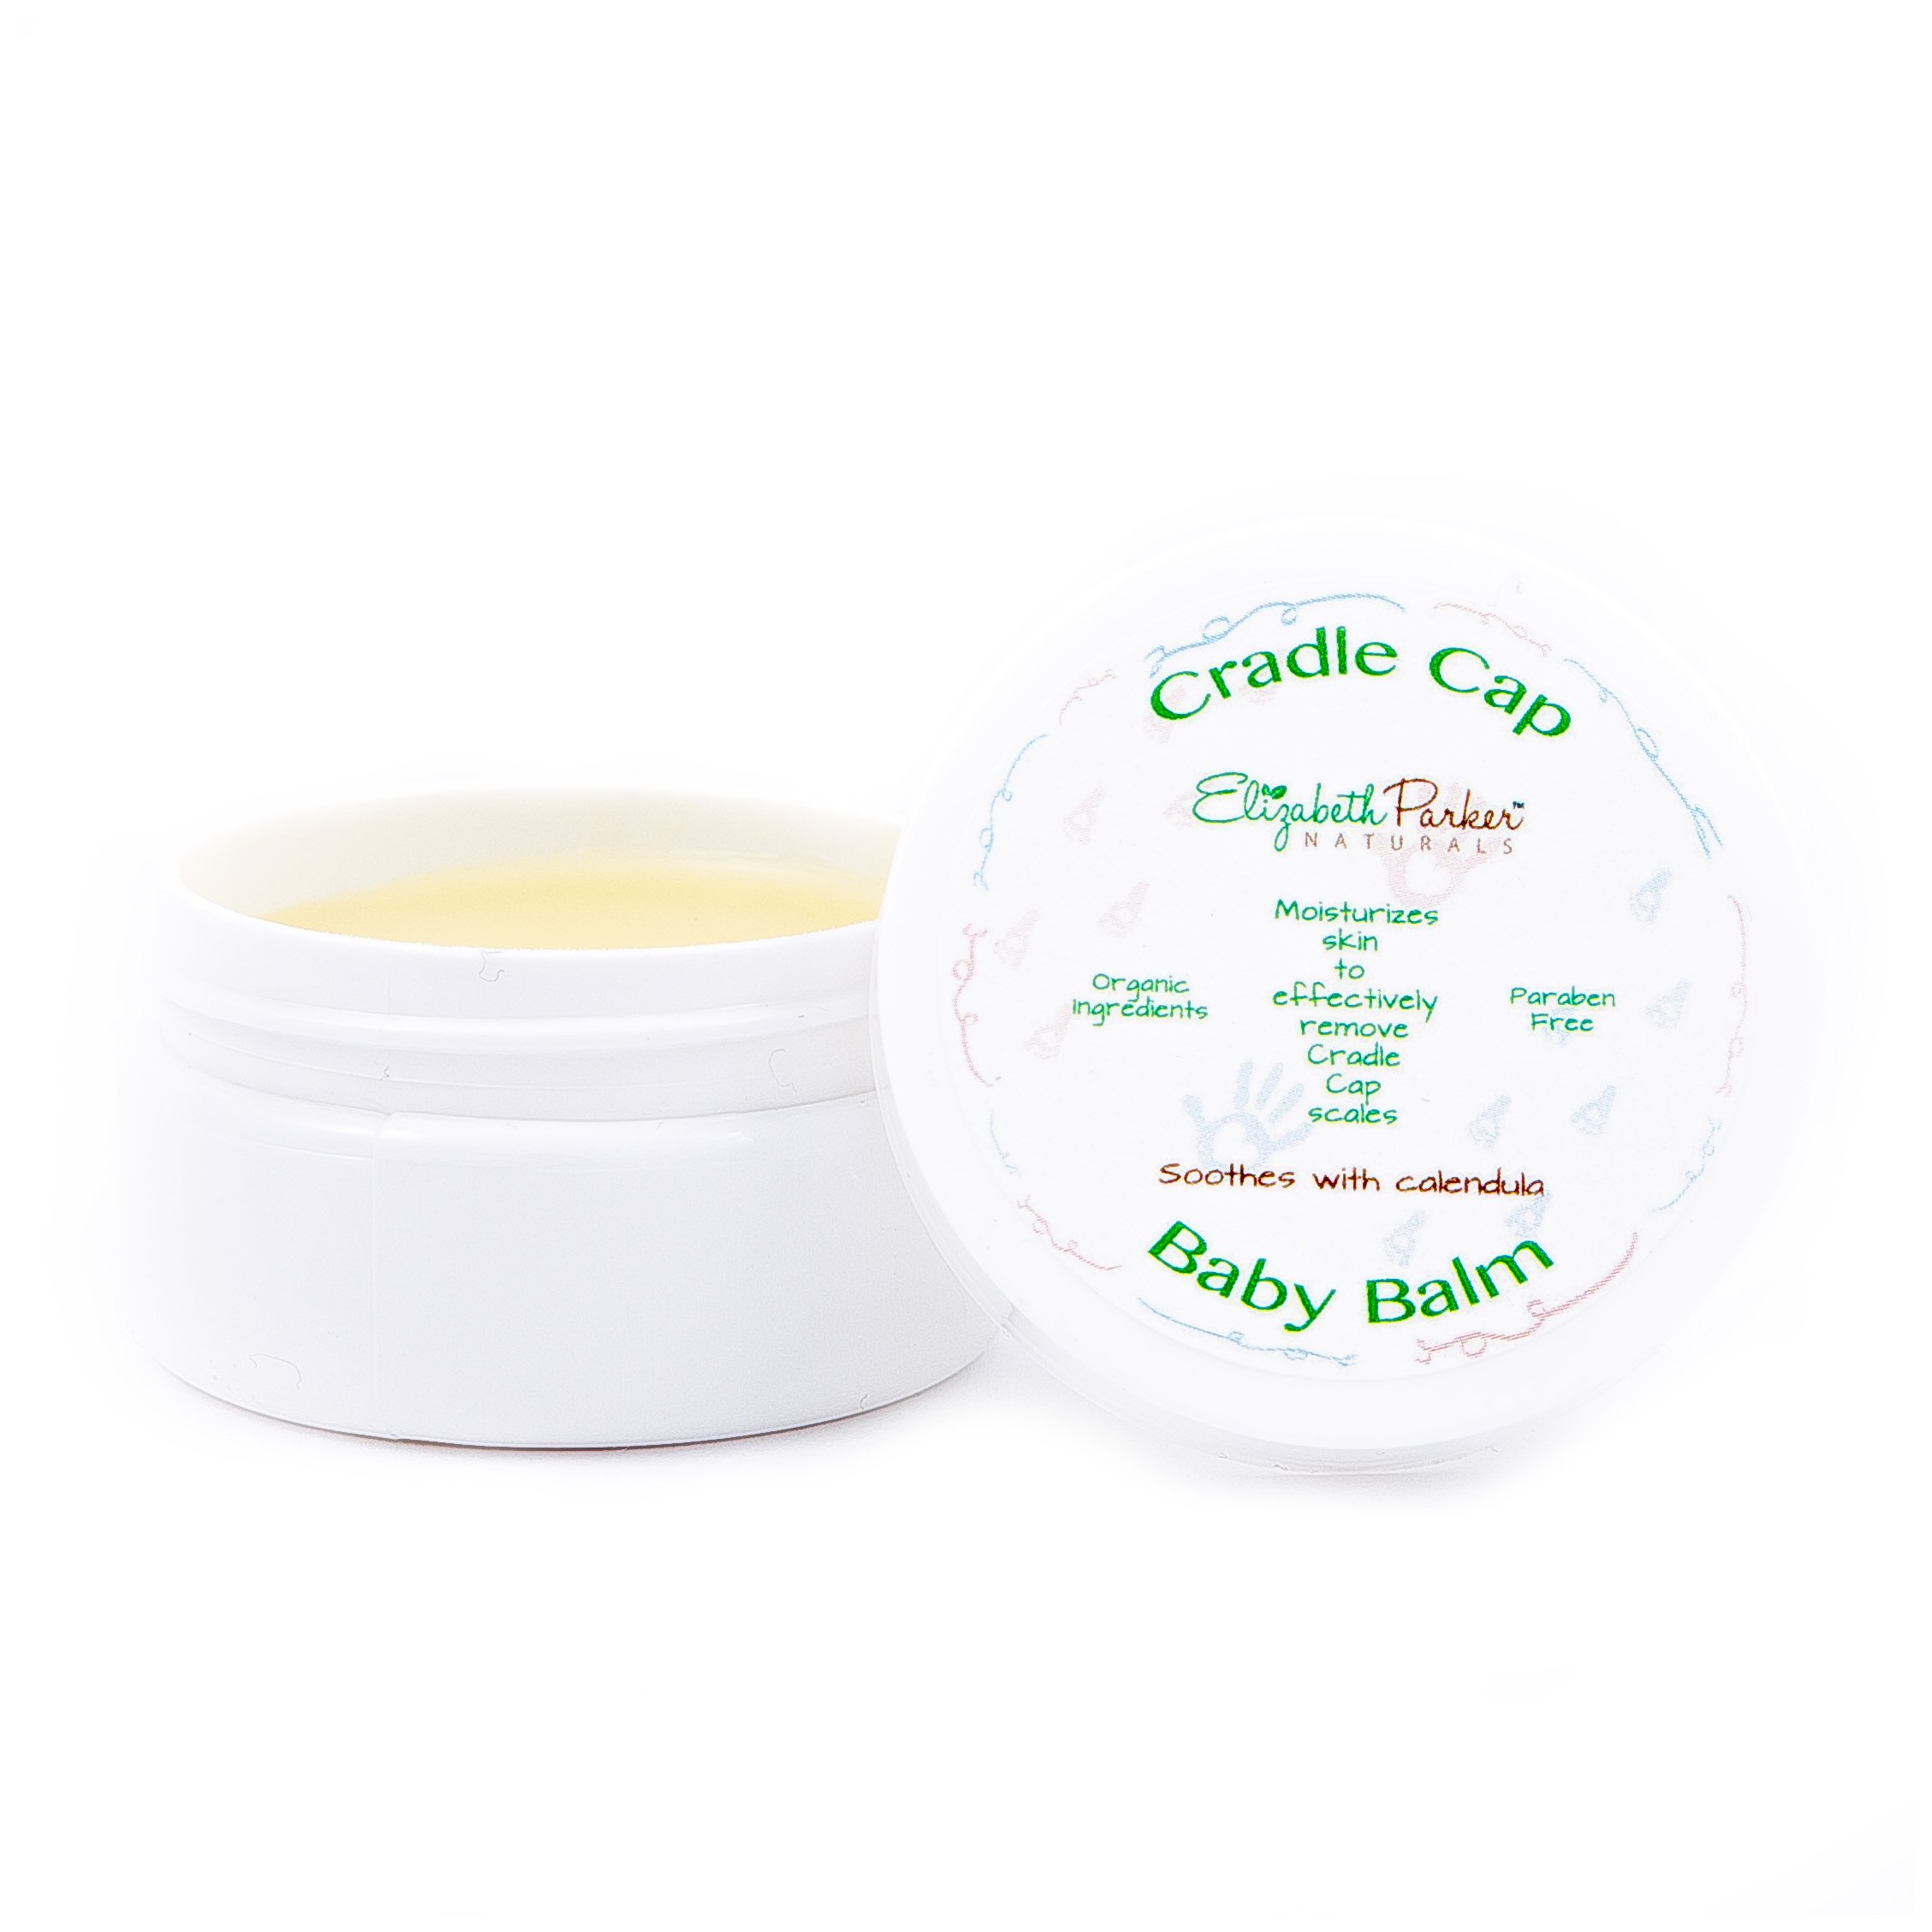 Cradle Cap Healing Balm for Baby - with Manuka Honey, Calendula Oil & Beeswax - Infant Seborrheic Dermatitis, Eczema, Rash & Redness Treatment - Sulfate & Paraben Free